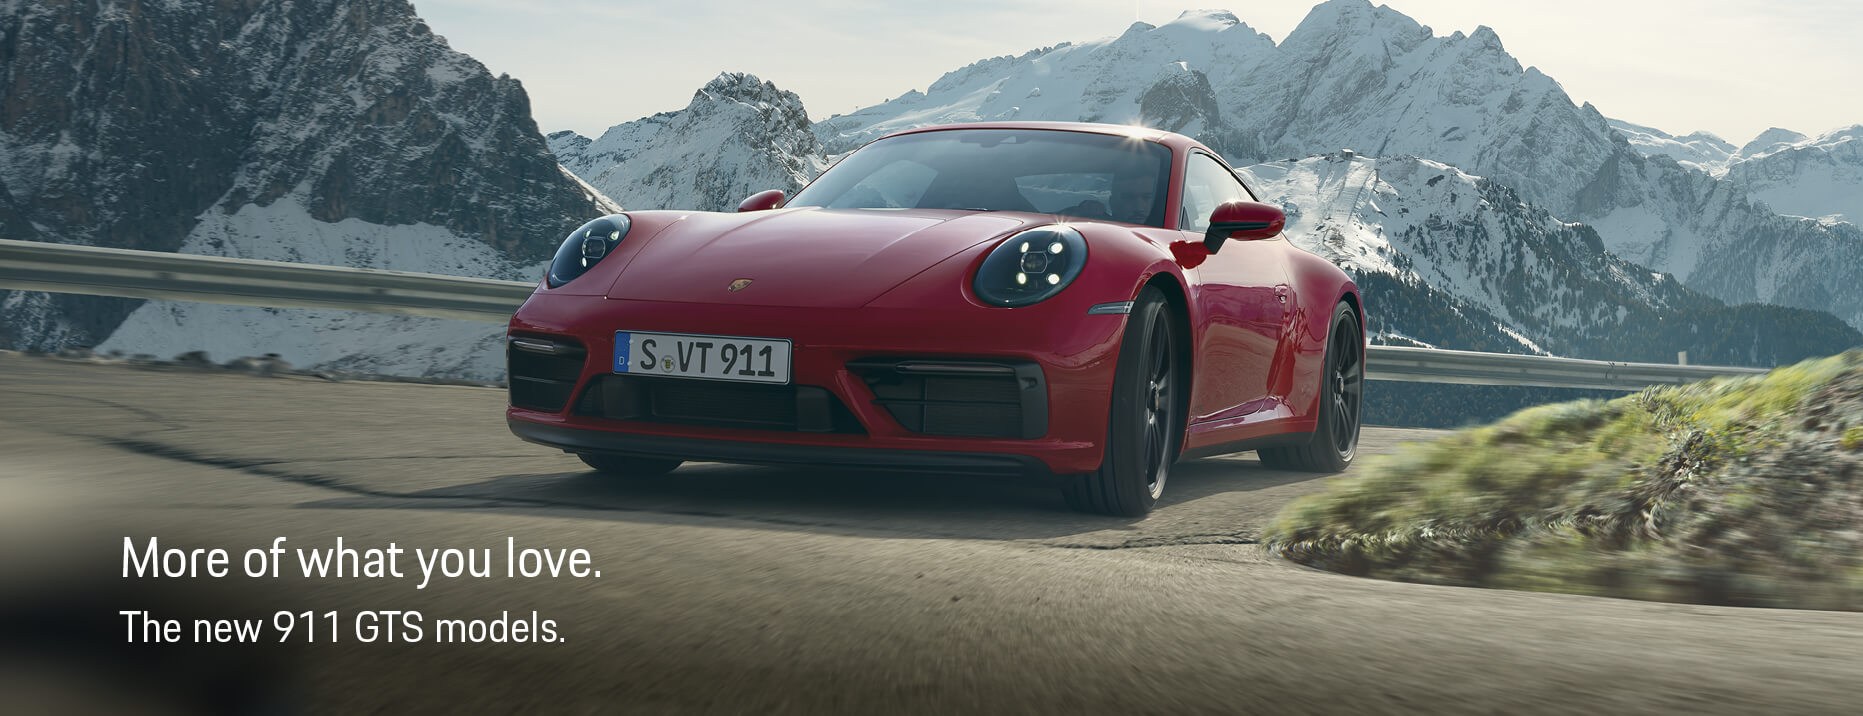 Porsche Dealership Brisbane